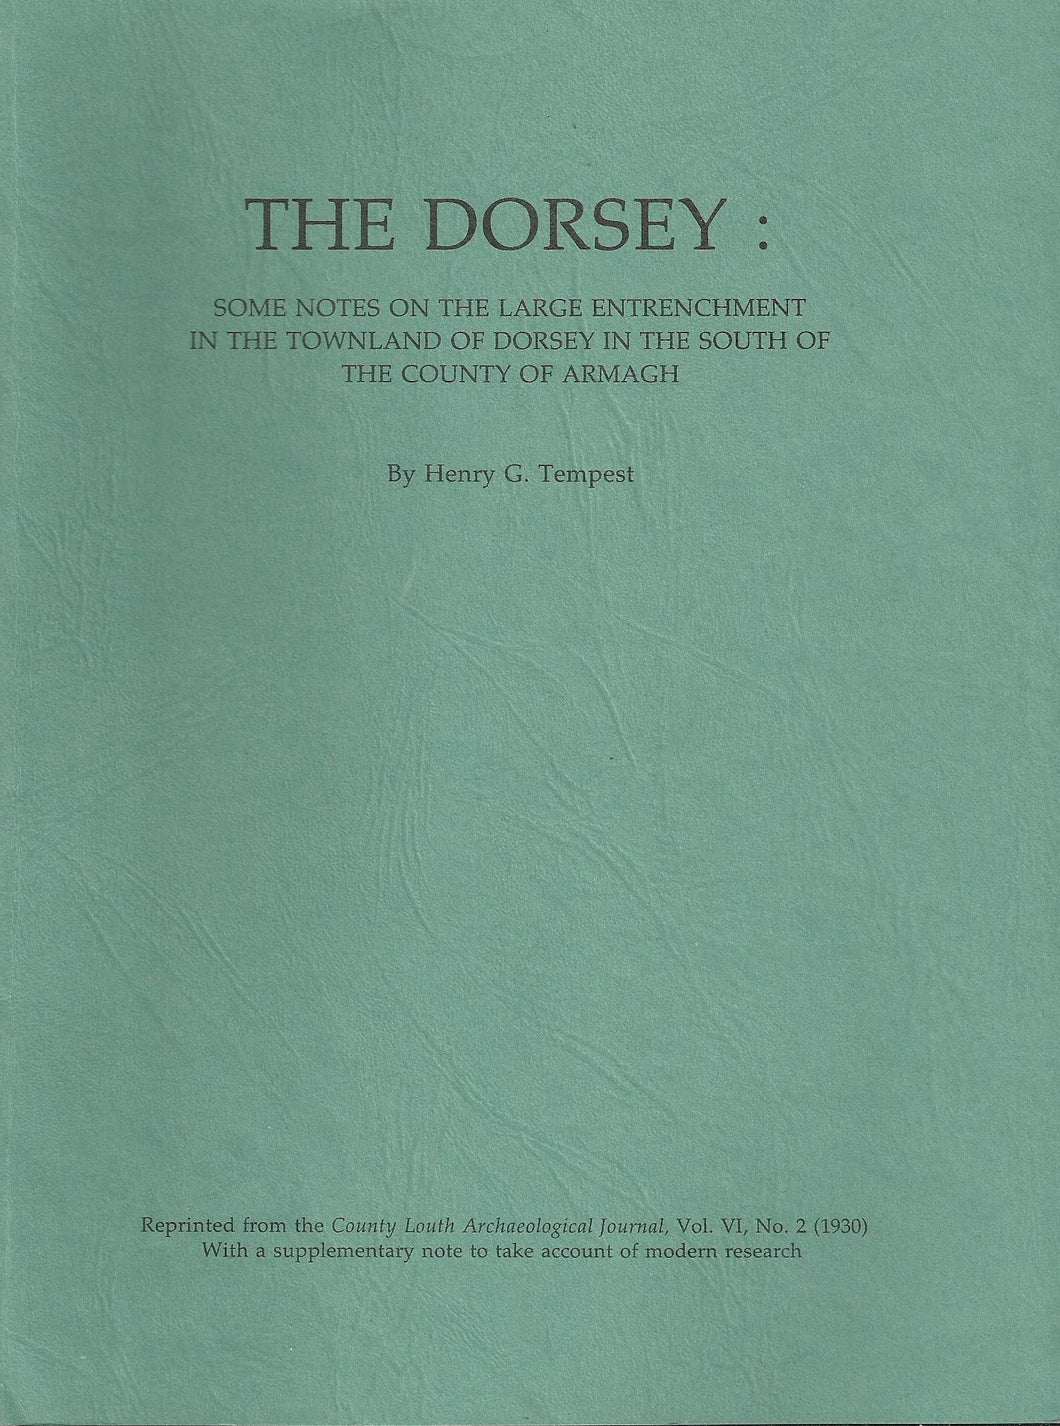 The Dorsey: Some Notes on the Large Entrenchment in the Townland of Dorsey in the South of the County of Armagh